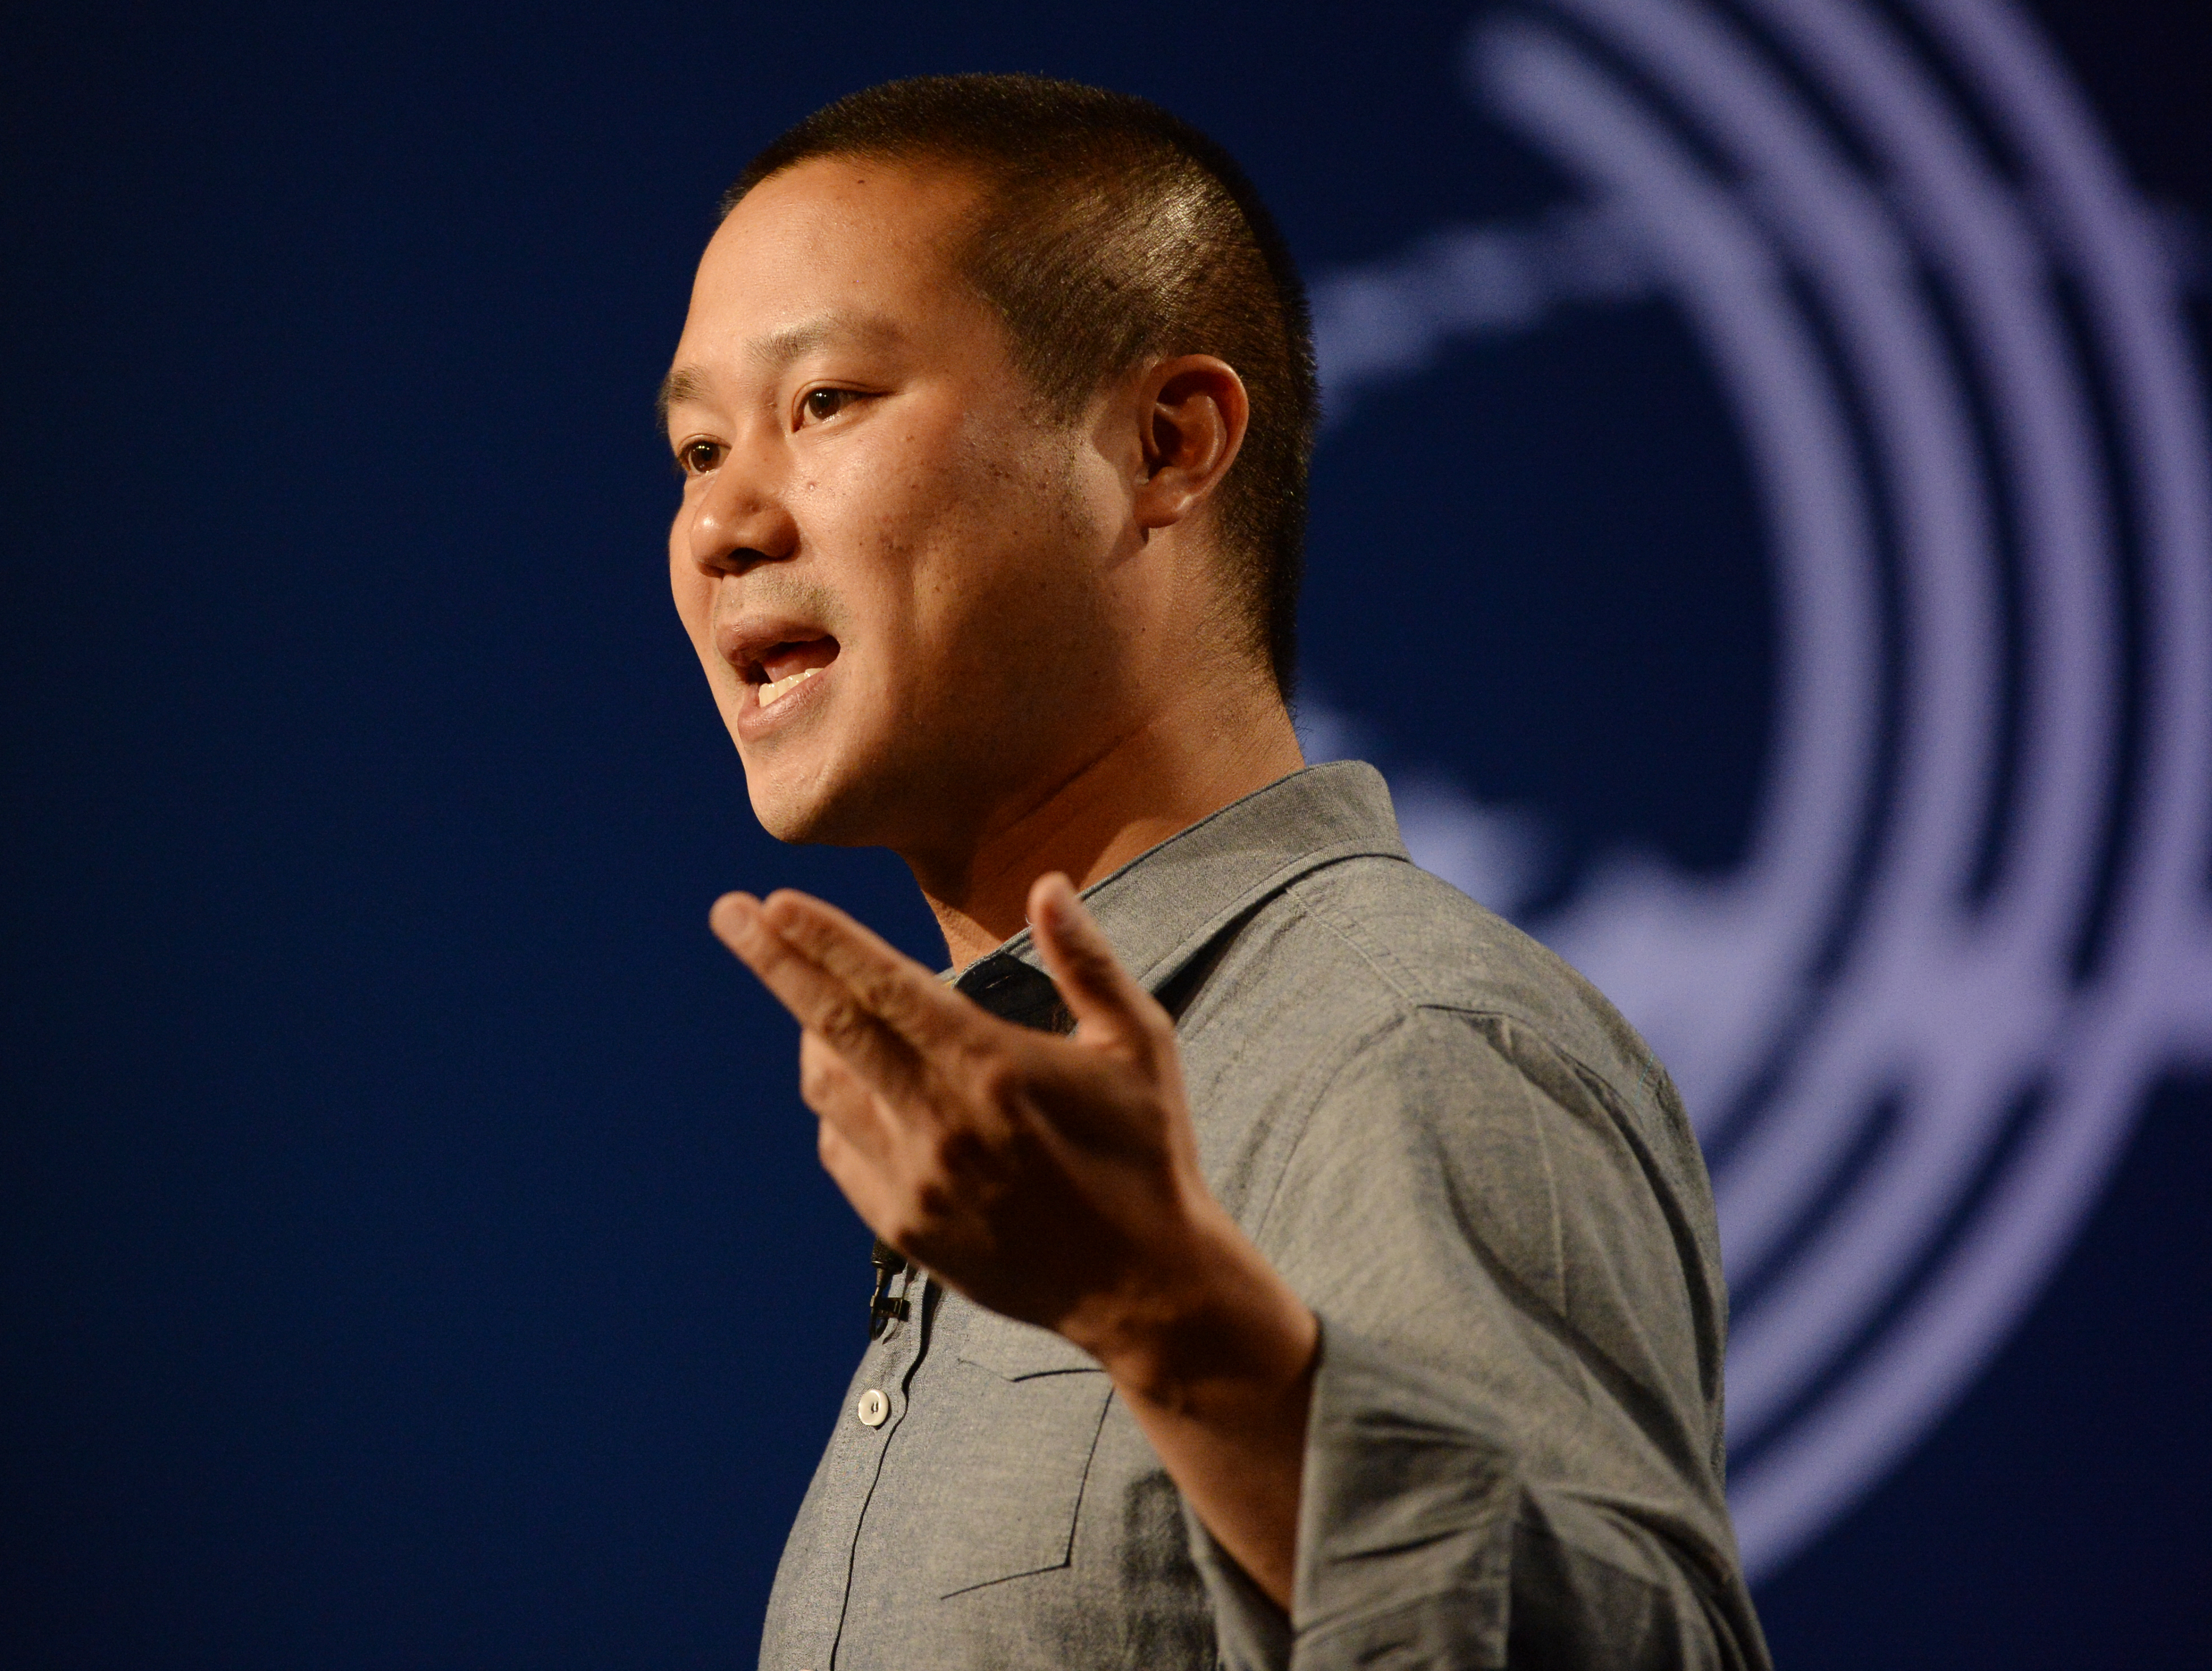 Zappos CEO Tony Hsieh speaks at the Clinton Global Initiative America at the Sheridan, Denver on June 25, 2014.